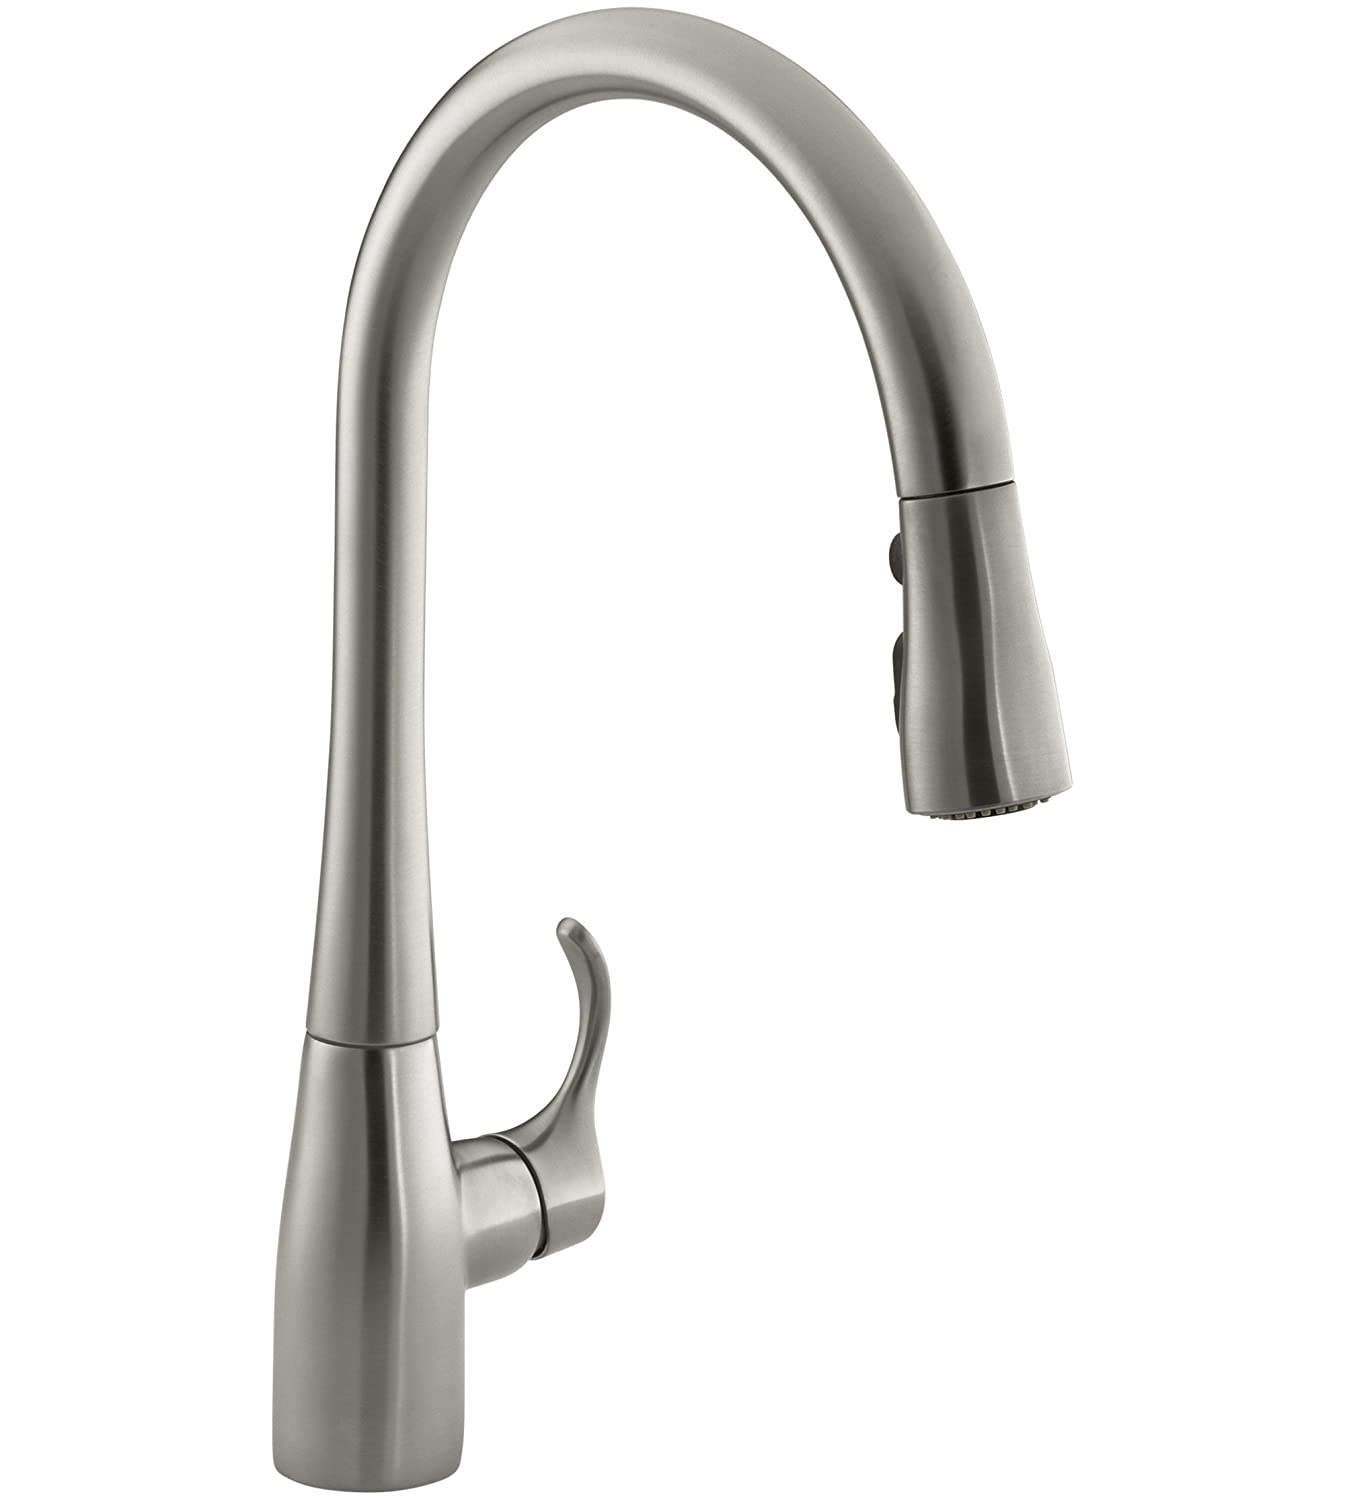 KOHLER K-596-VS Simplice High-Arch Single-Hole or Three-Hole, Single  Handle, Pull-Down Sprayer Kitchen Faucet, Vibrant Brushed Stainless with  3-function ...